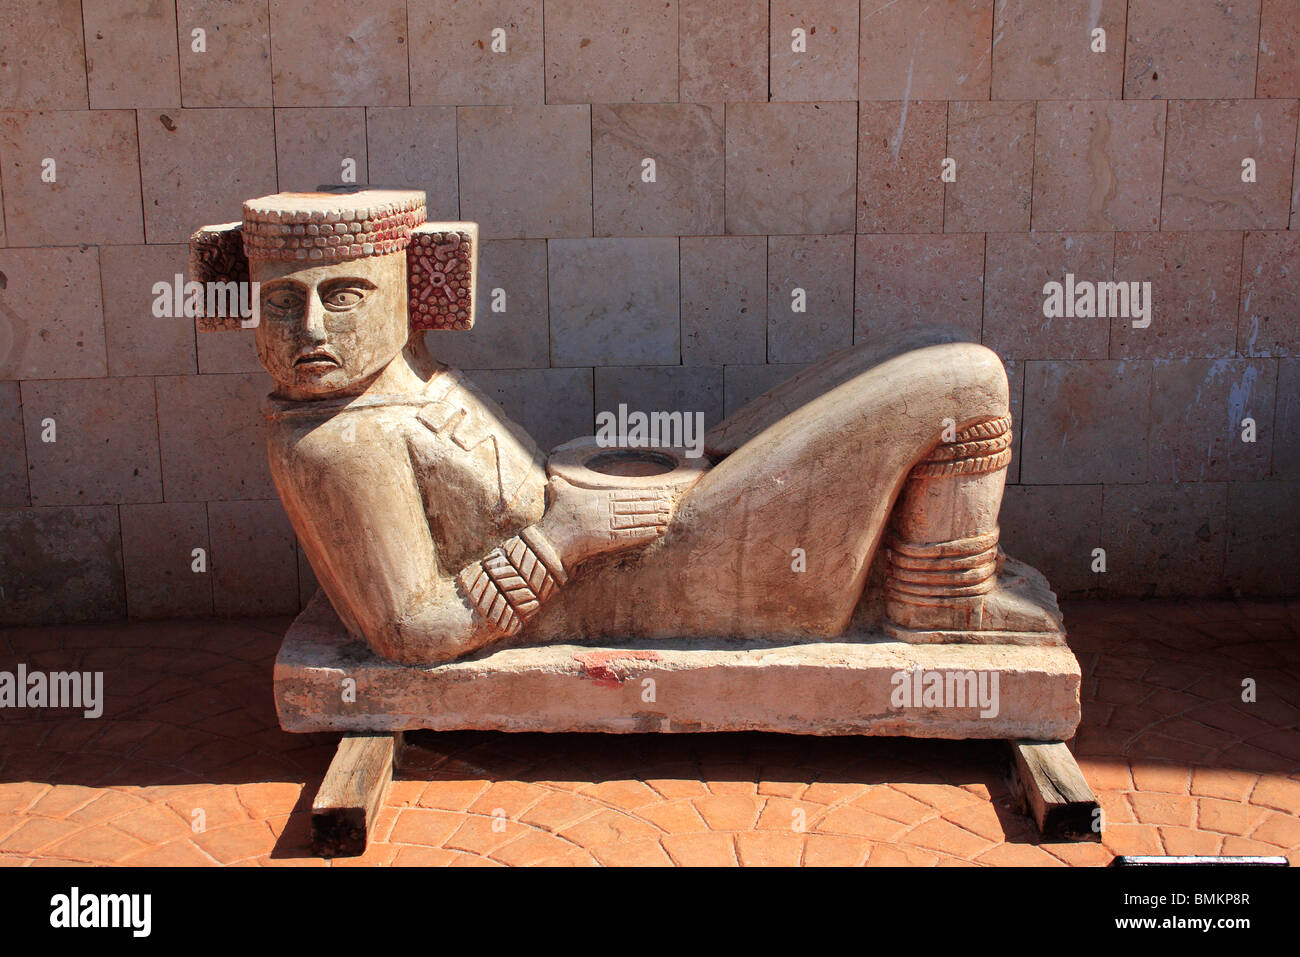 Sculpture ; Progresso ; Mexico - Stock Image